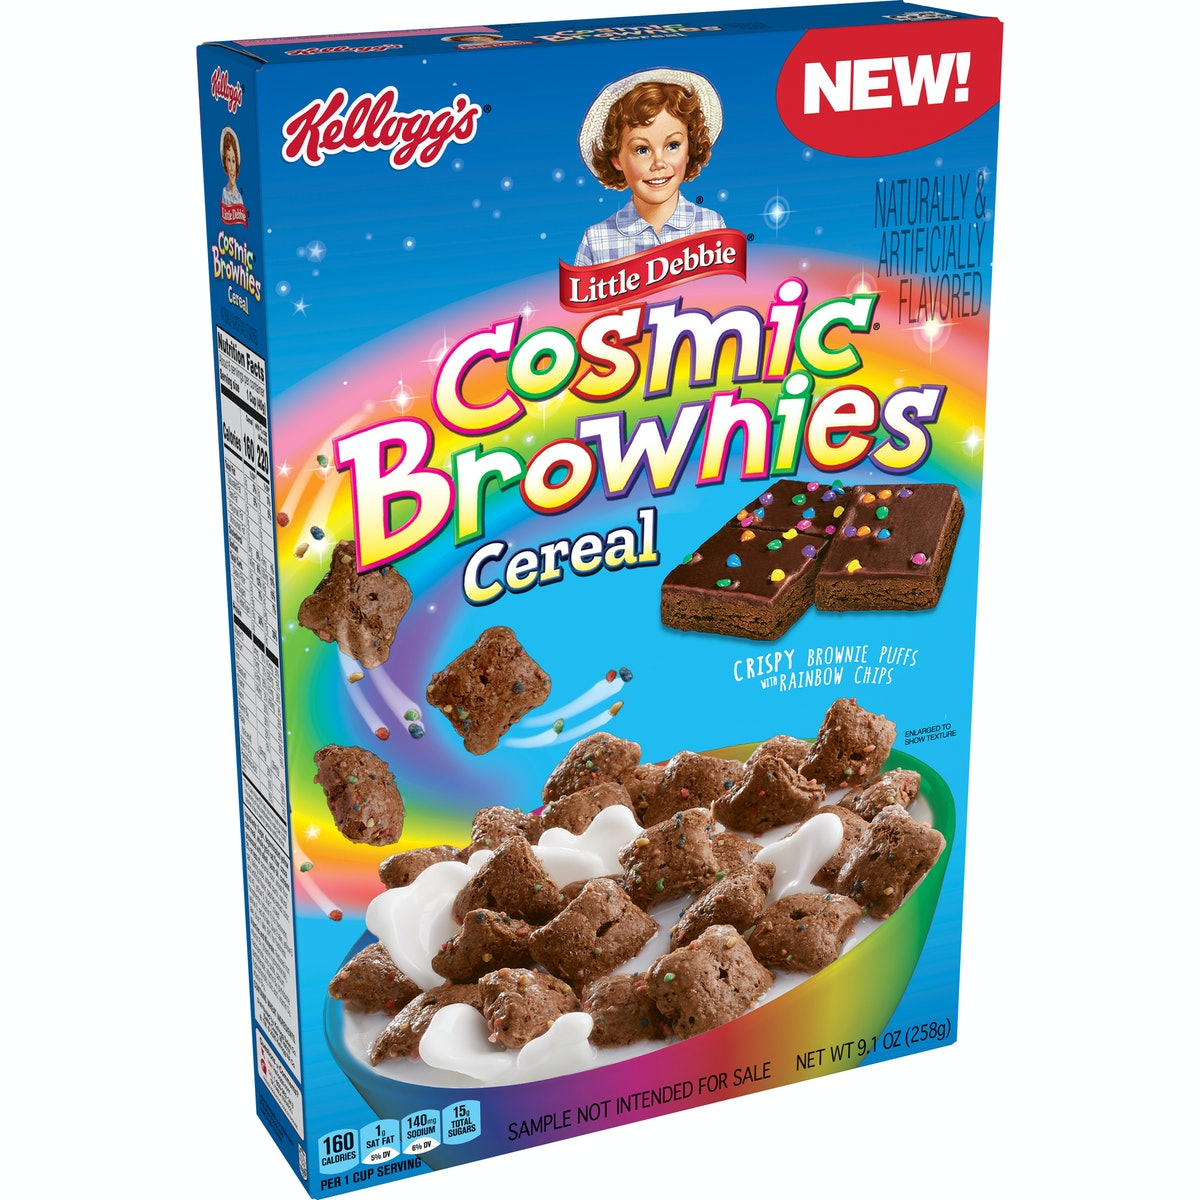 Kellogg's Little Debbie Cosmic Brownies Cereal will hit shelves in May 2021.